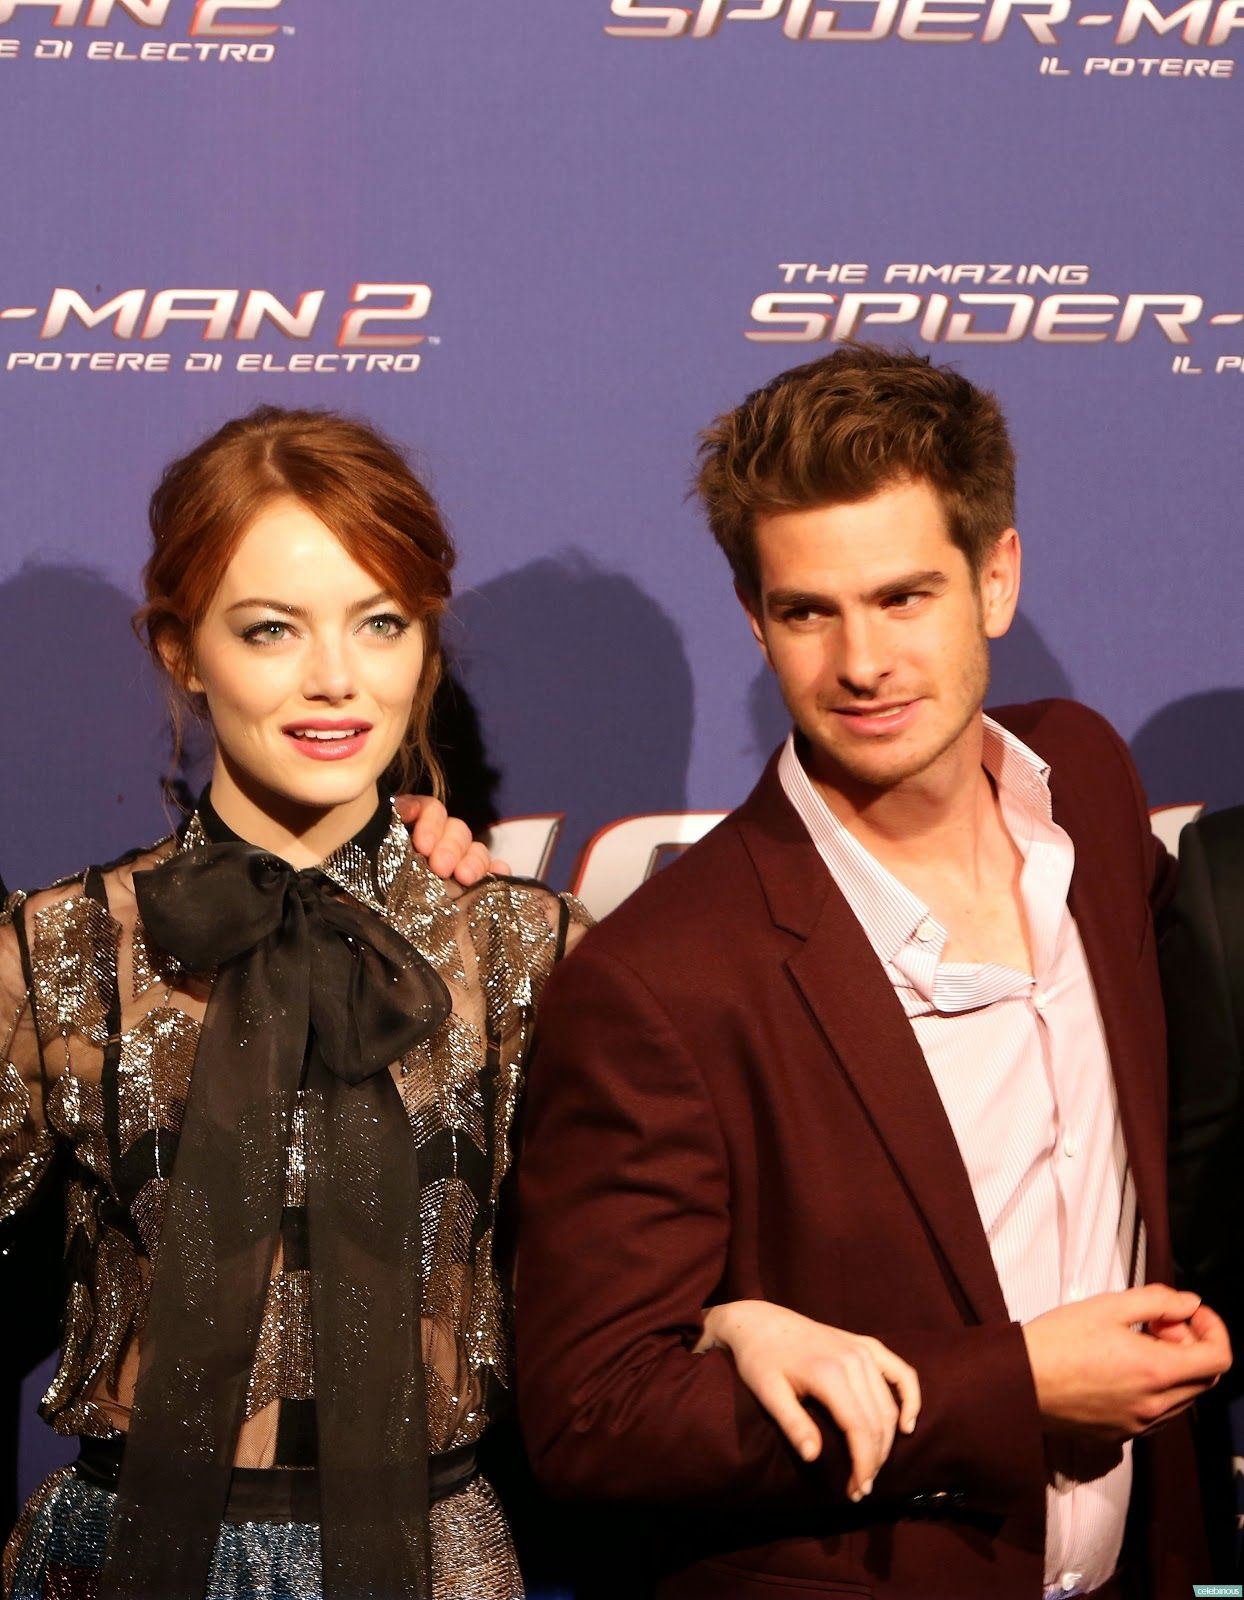 Andrew Garfield And Emma Stone Love Story And Meet Cute Is Certainly